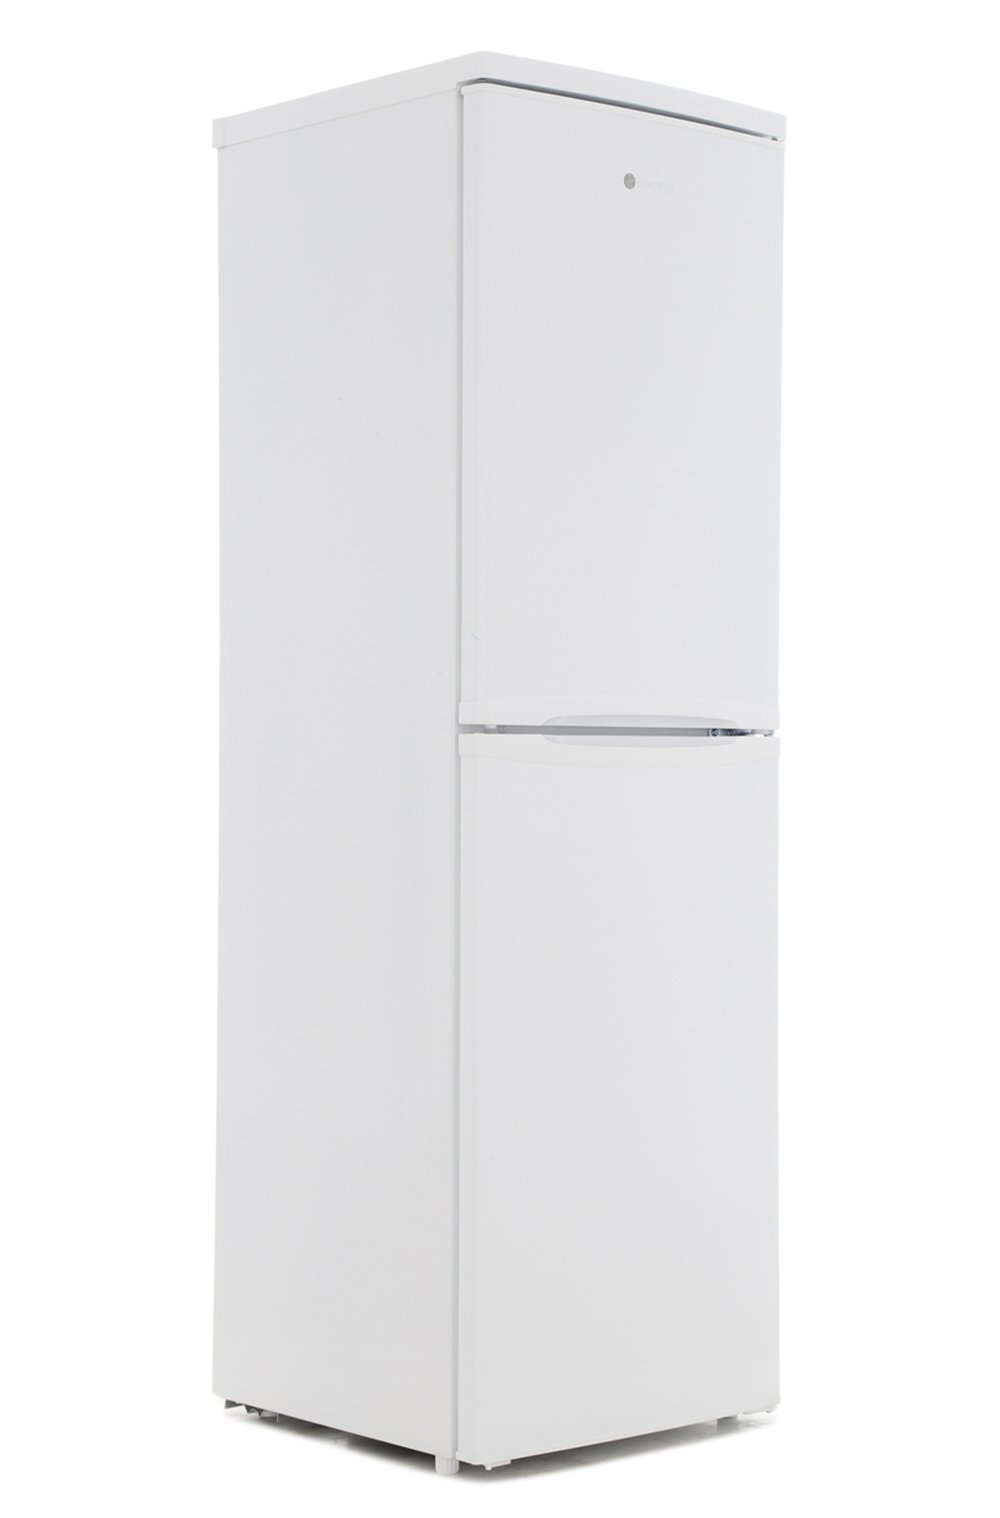 Hoover HSC574W Static Fridge Freezer